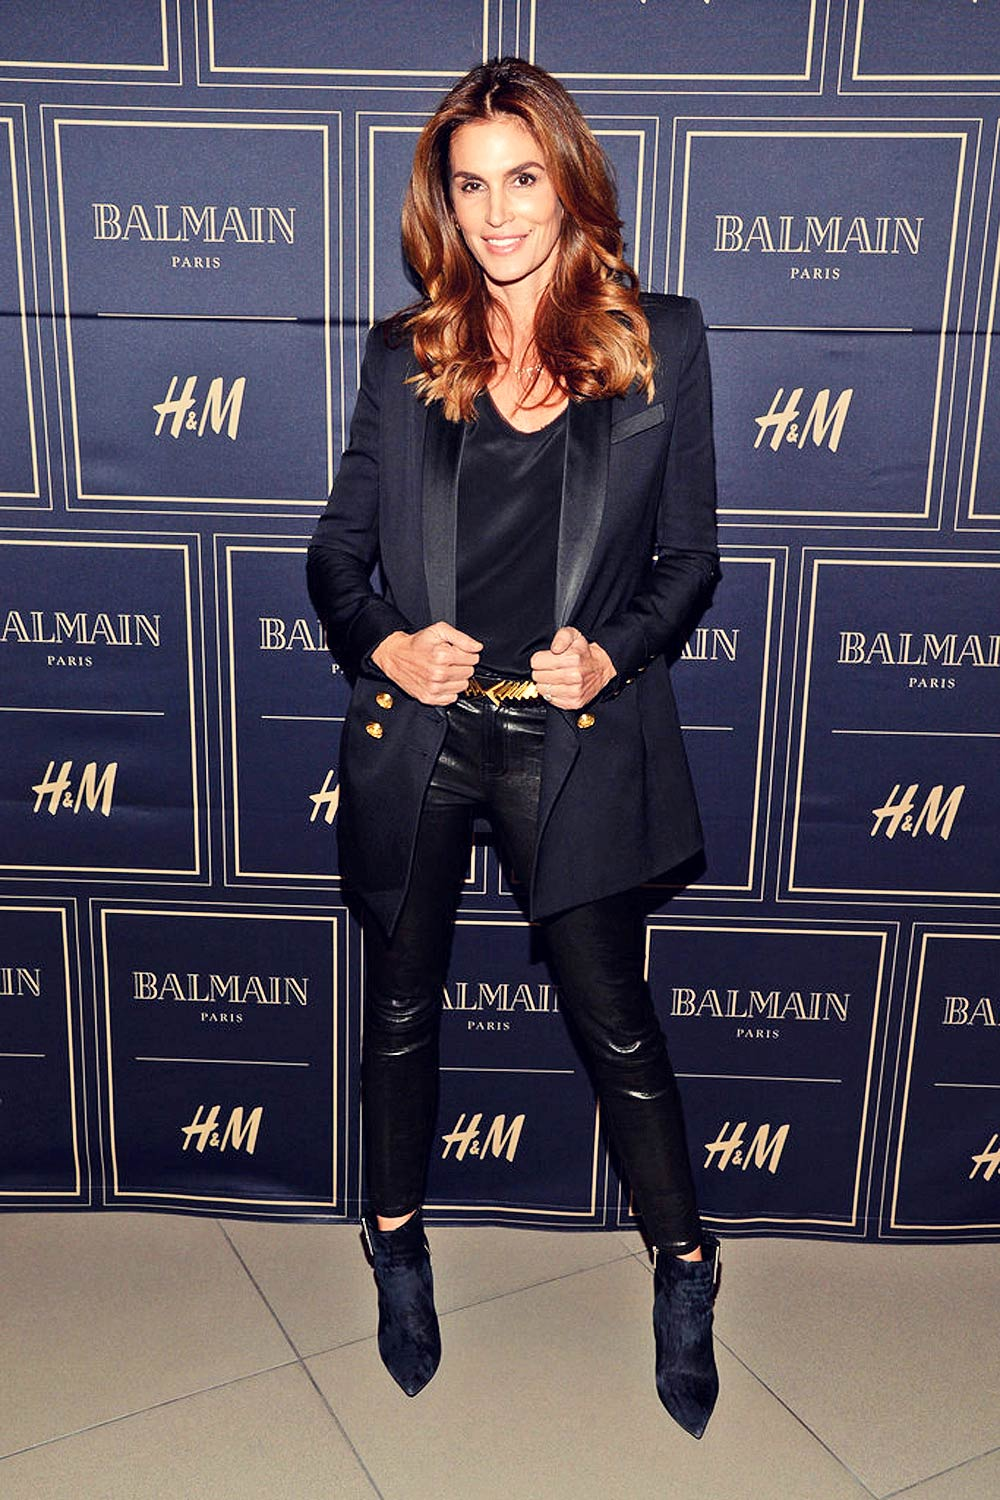 Cindy Crawford attends the Balmain x H&M LA VIP Pre-Launch